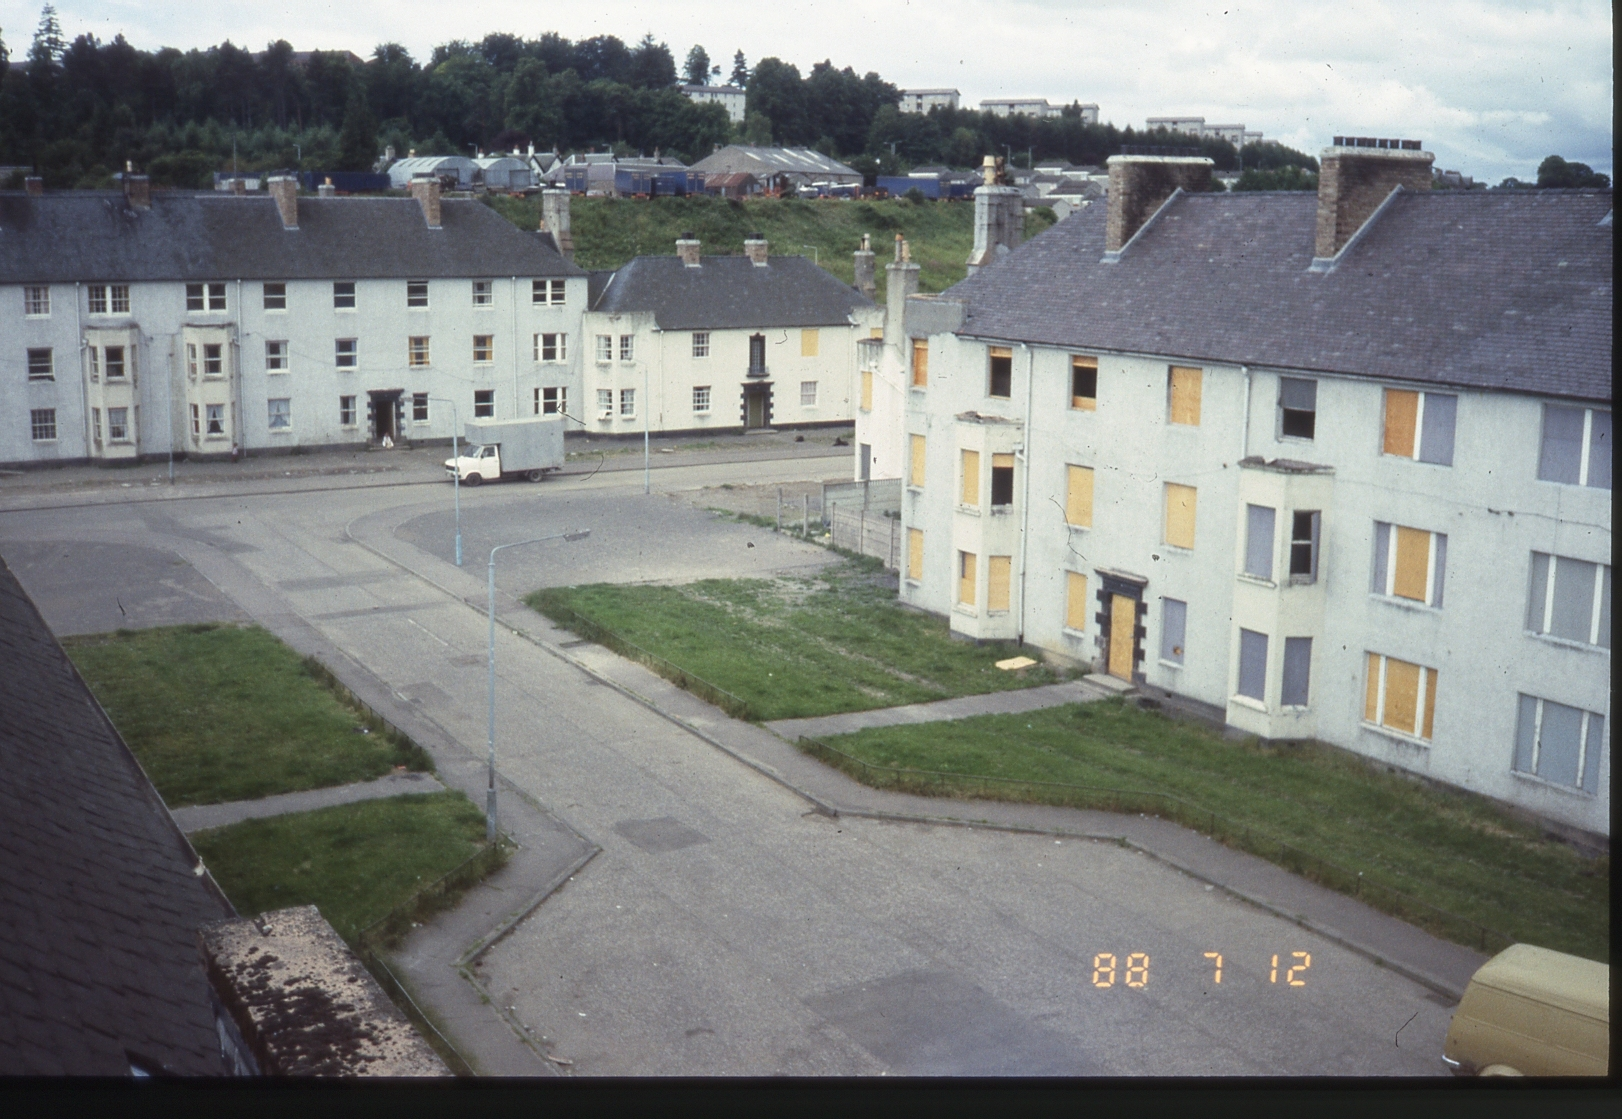 Once a model community, by the 1980s Hunter Crescent in Perth was known as Scotland's most deprived estate. A new book chronicles its lurid, sad but often funny history.